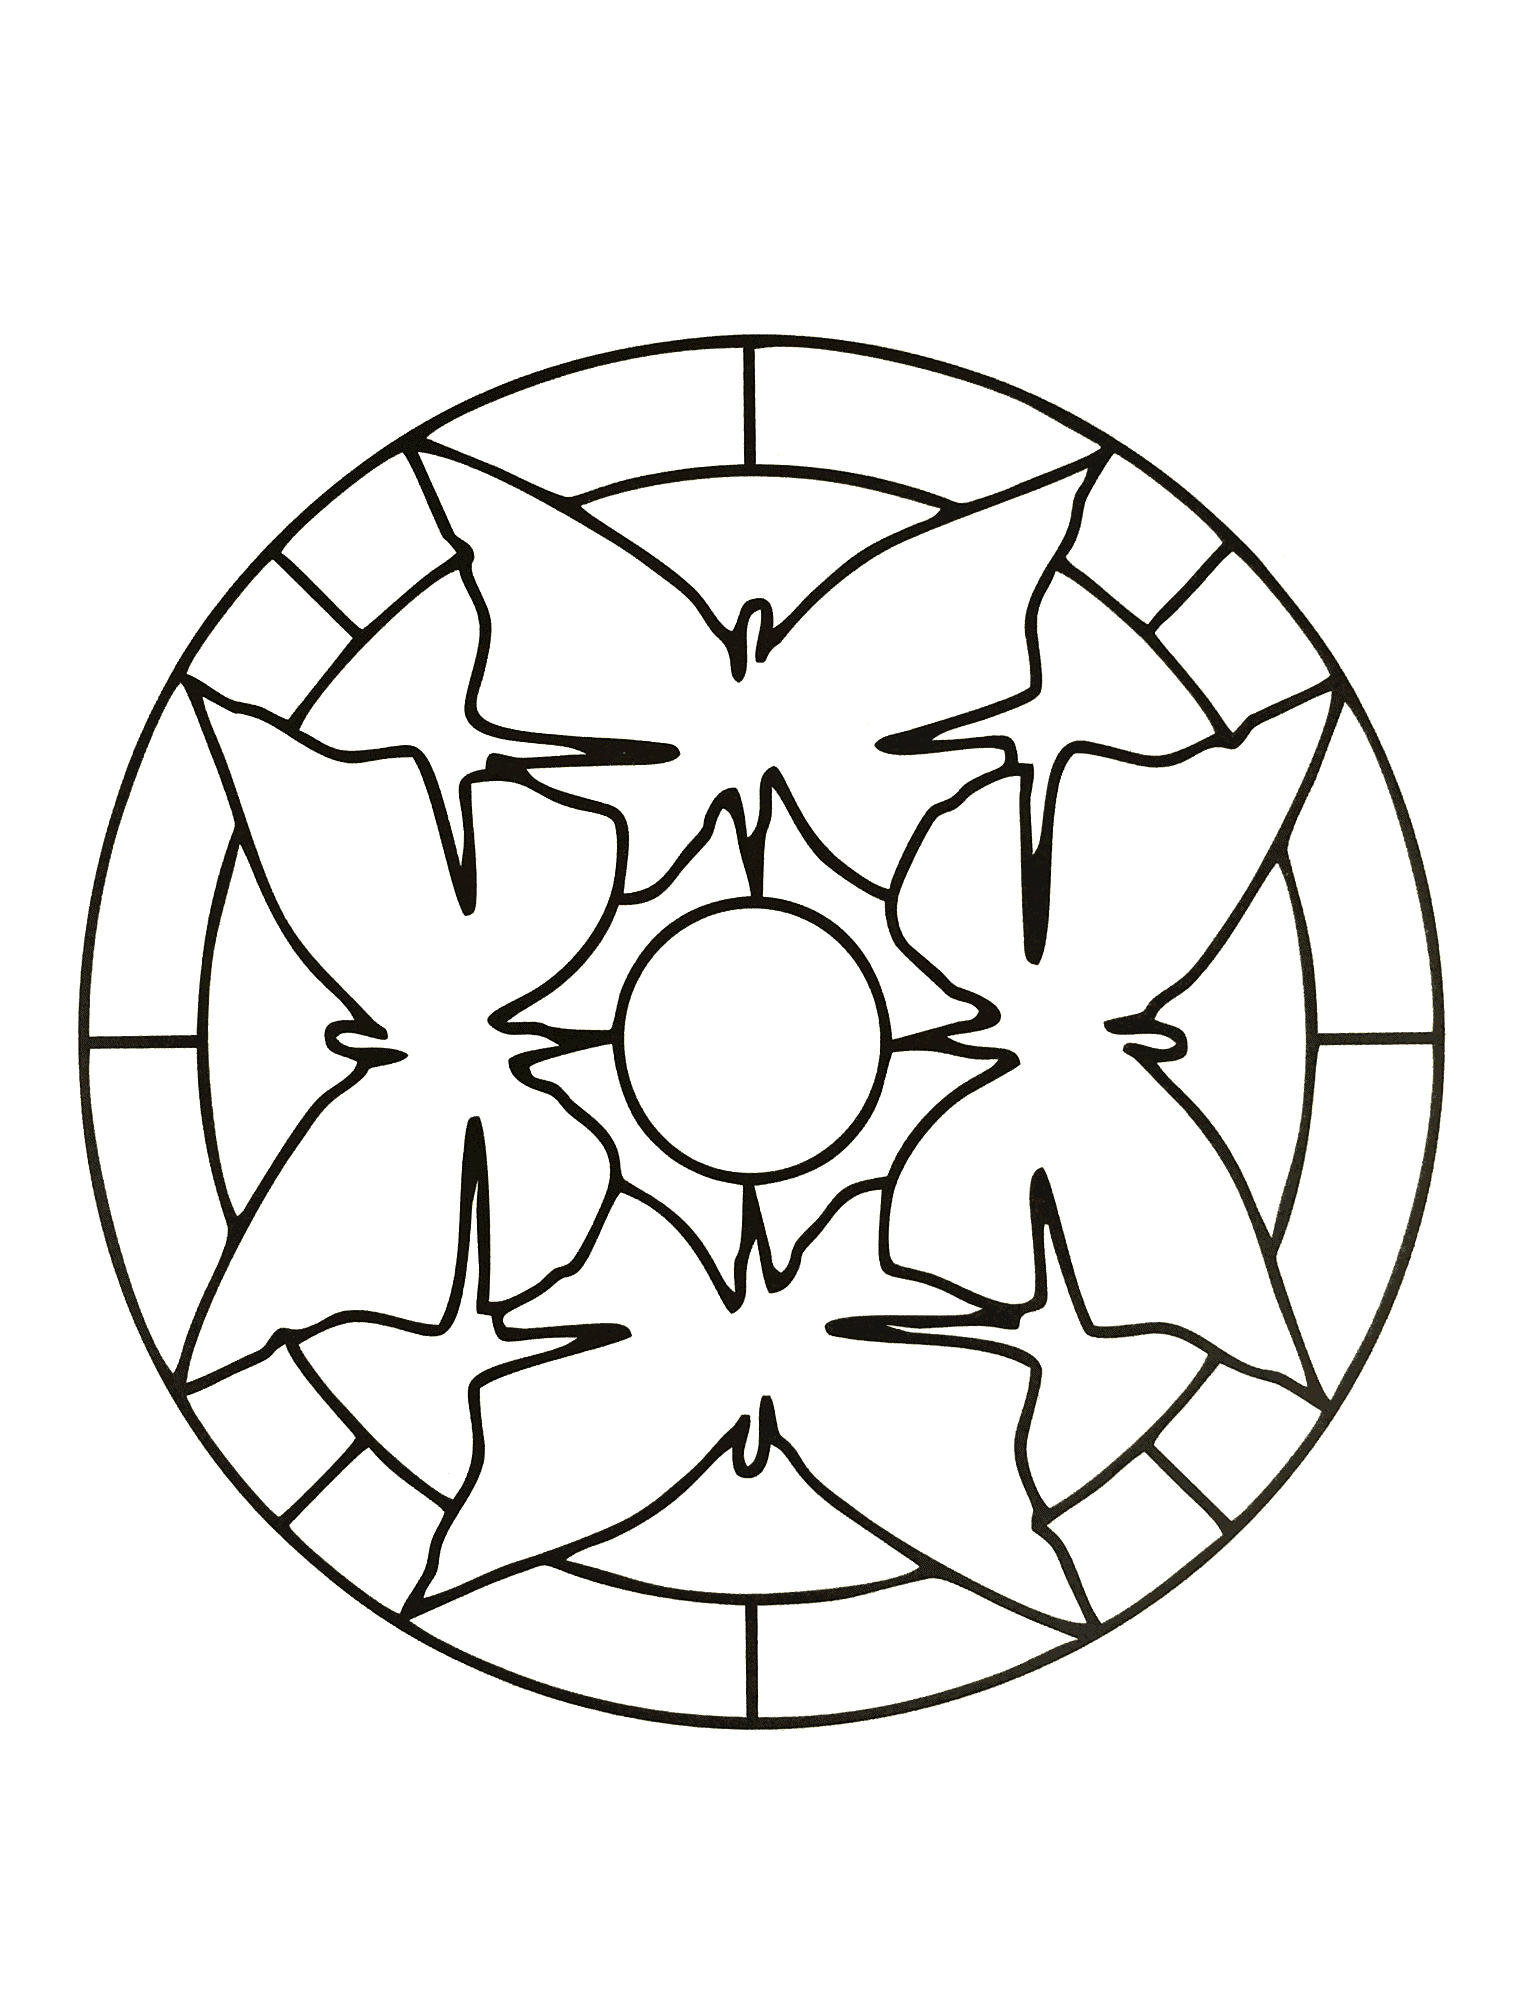 In these pages, we offer you Easy Mandala coloring pages for kids ...